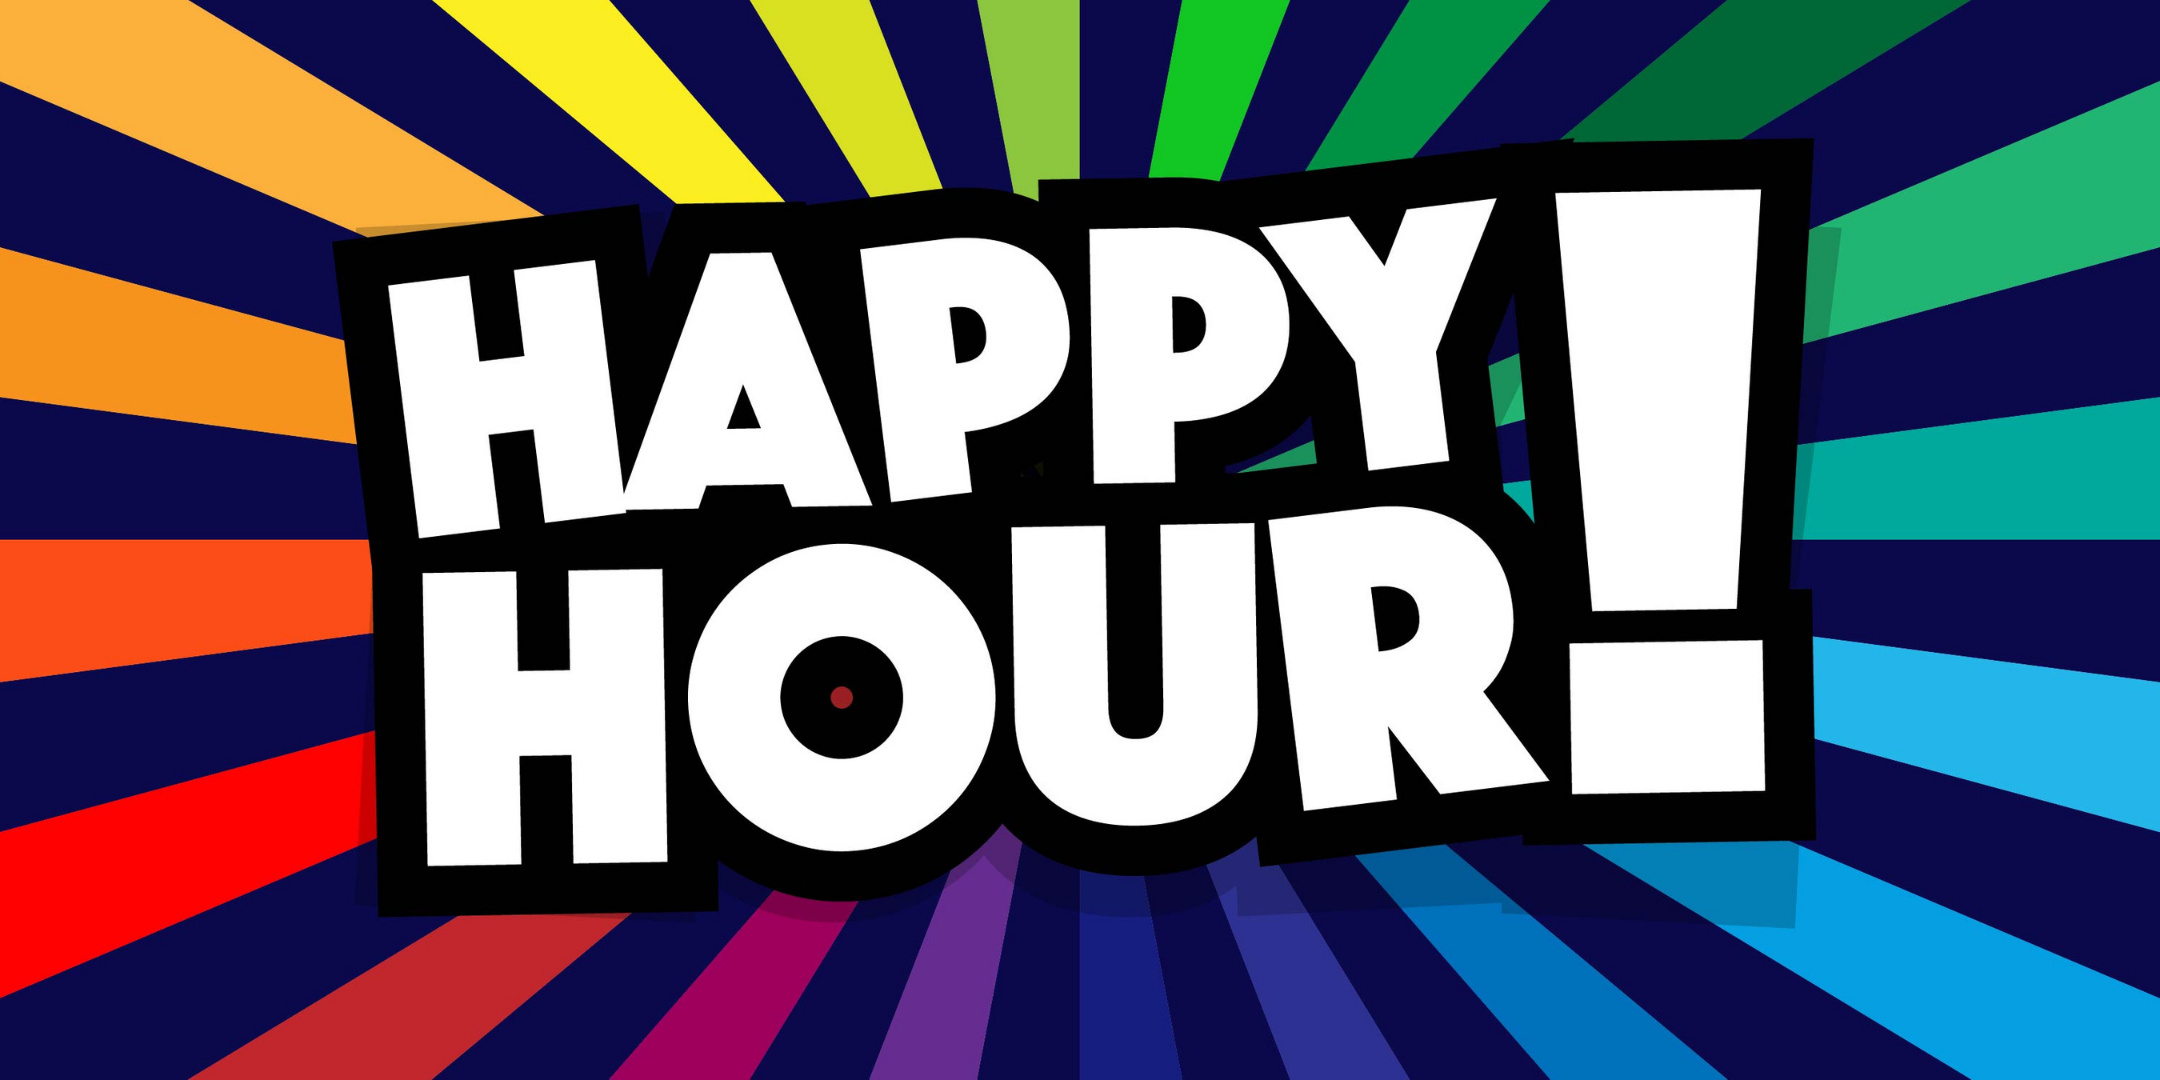 Wunder Hour(s) - A Happy Hour Experience